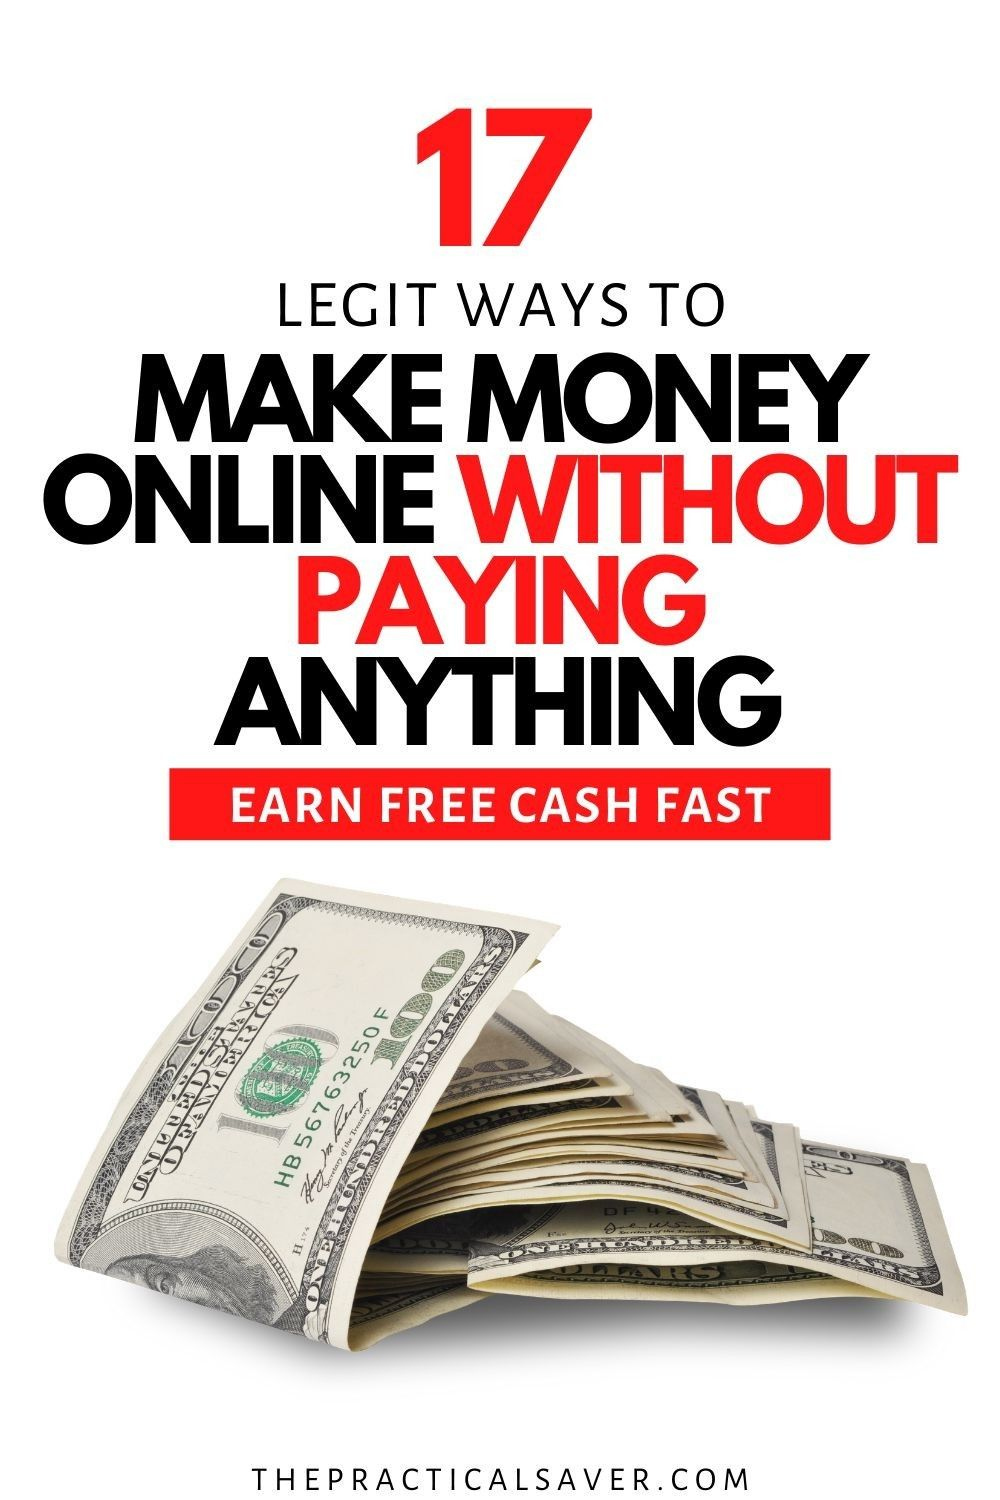 How To Make Money Online Without Paying Anything 2020